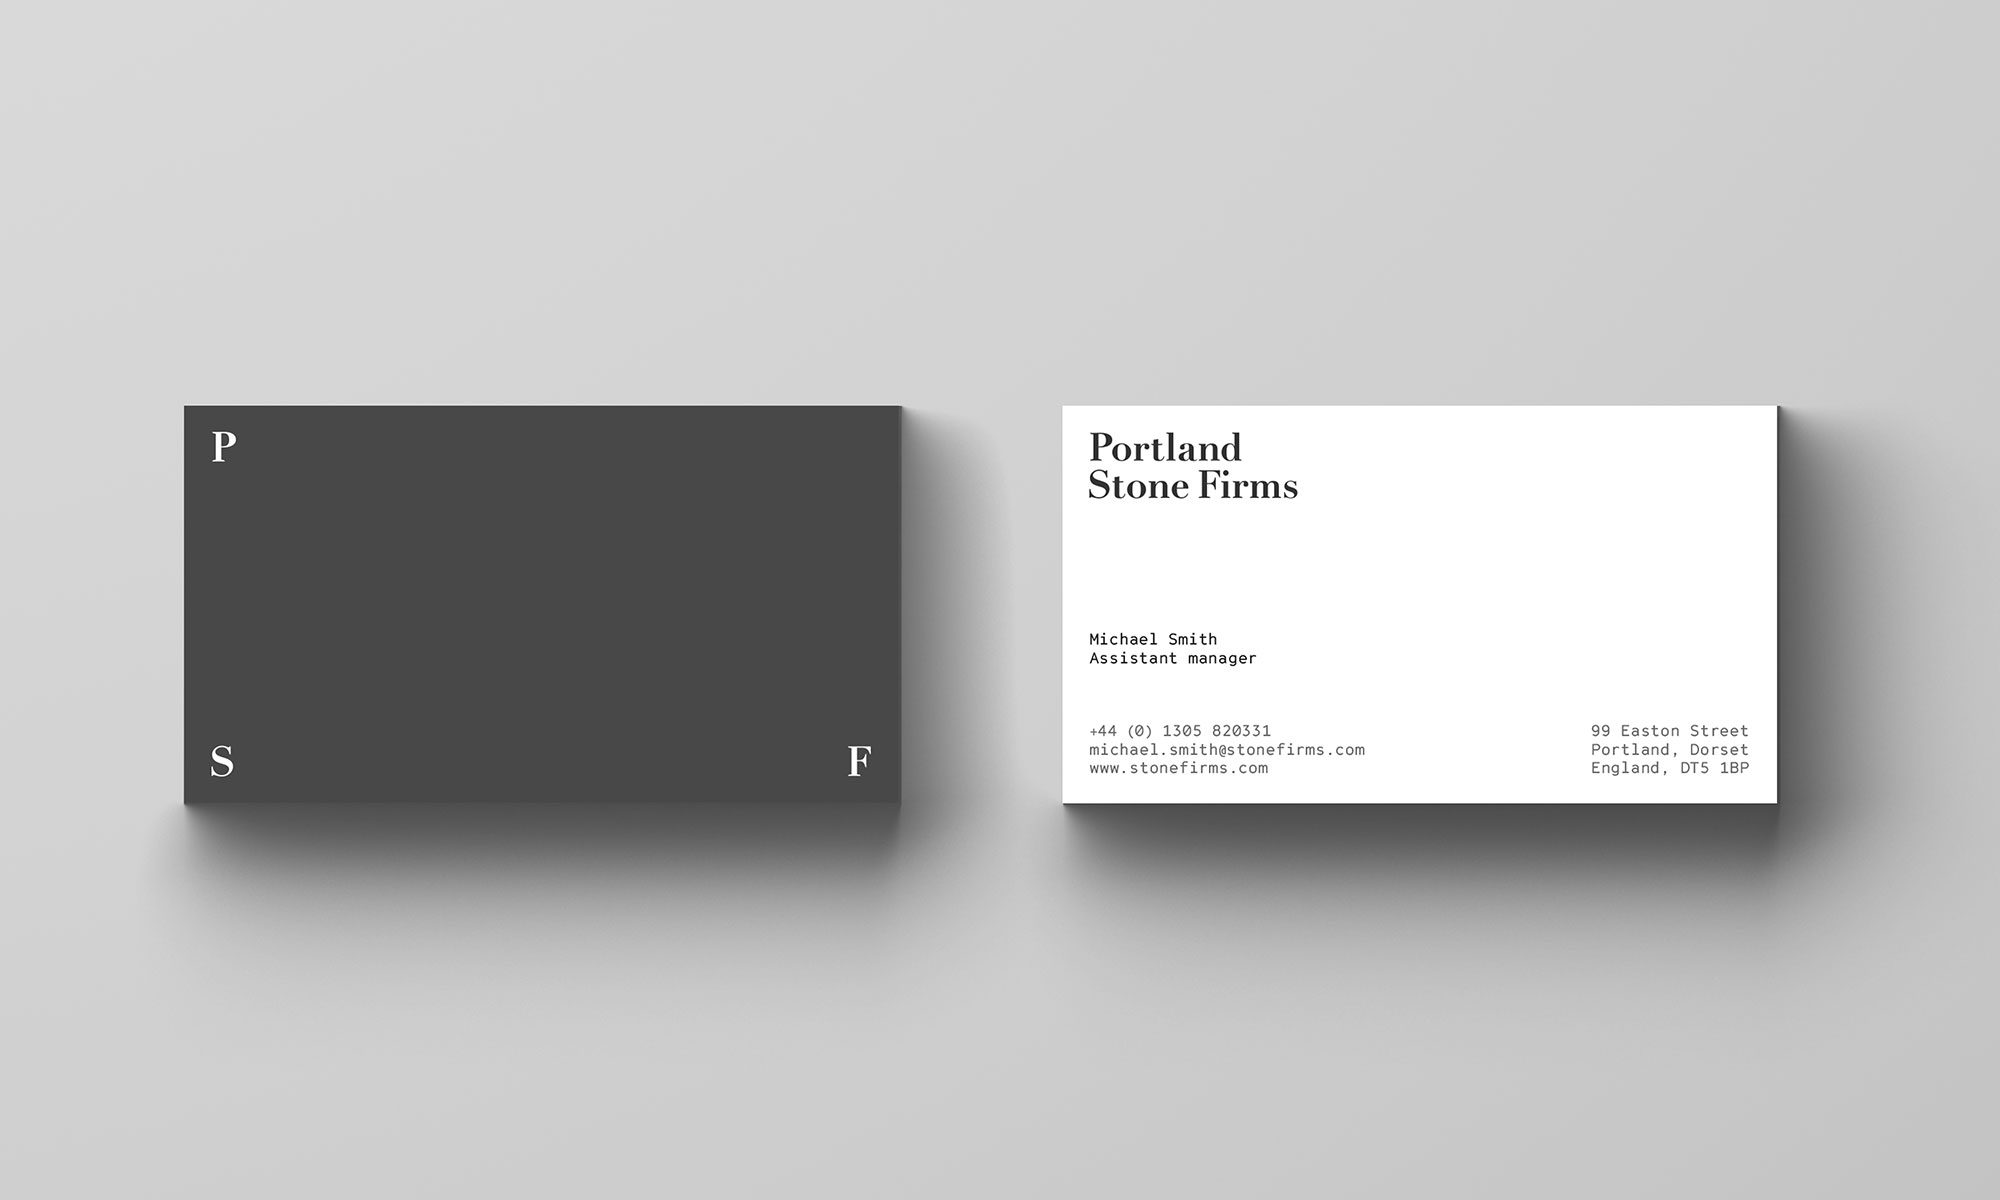 Portland Stone Firms business card